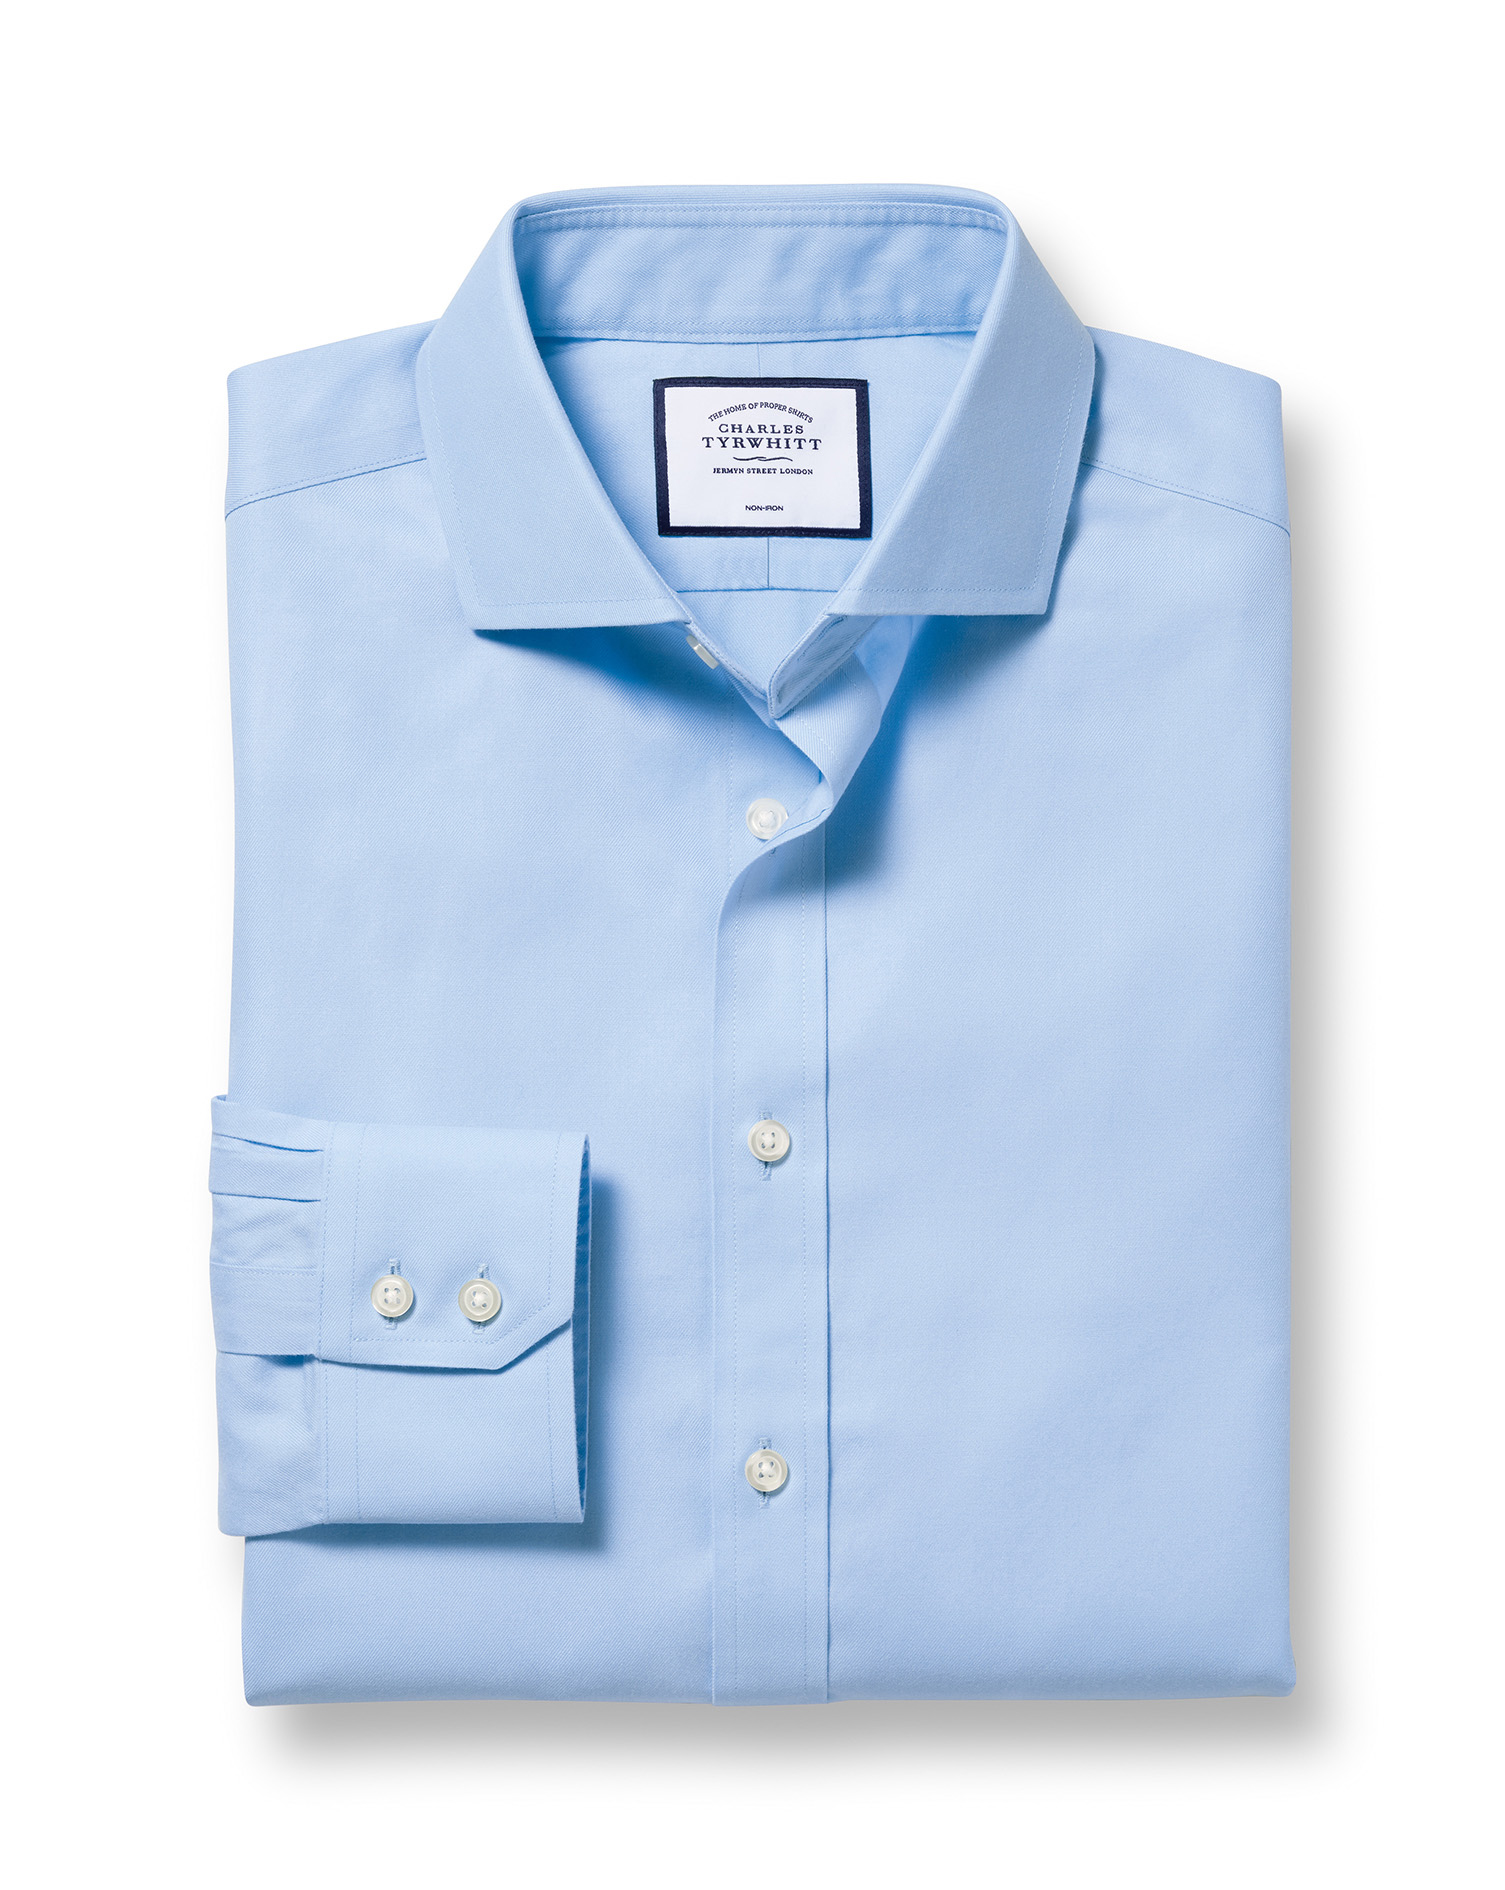 Slim Fit Cutaway Non-Iron Twill Sky Blue Cotton Formal Shirt Single Cuff Size 17.5/34 by Charles Tyr